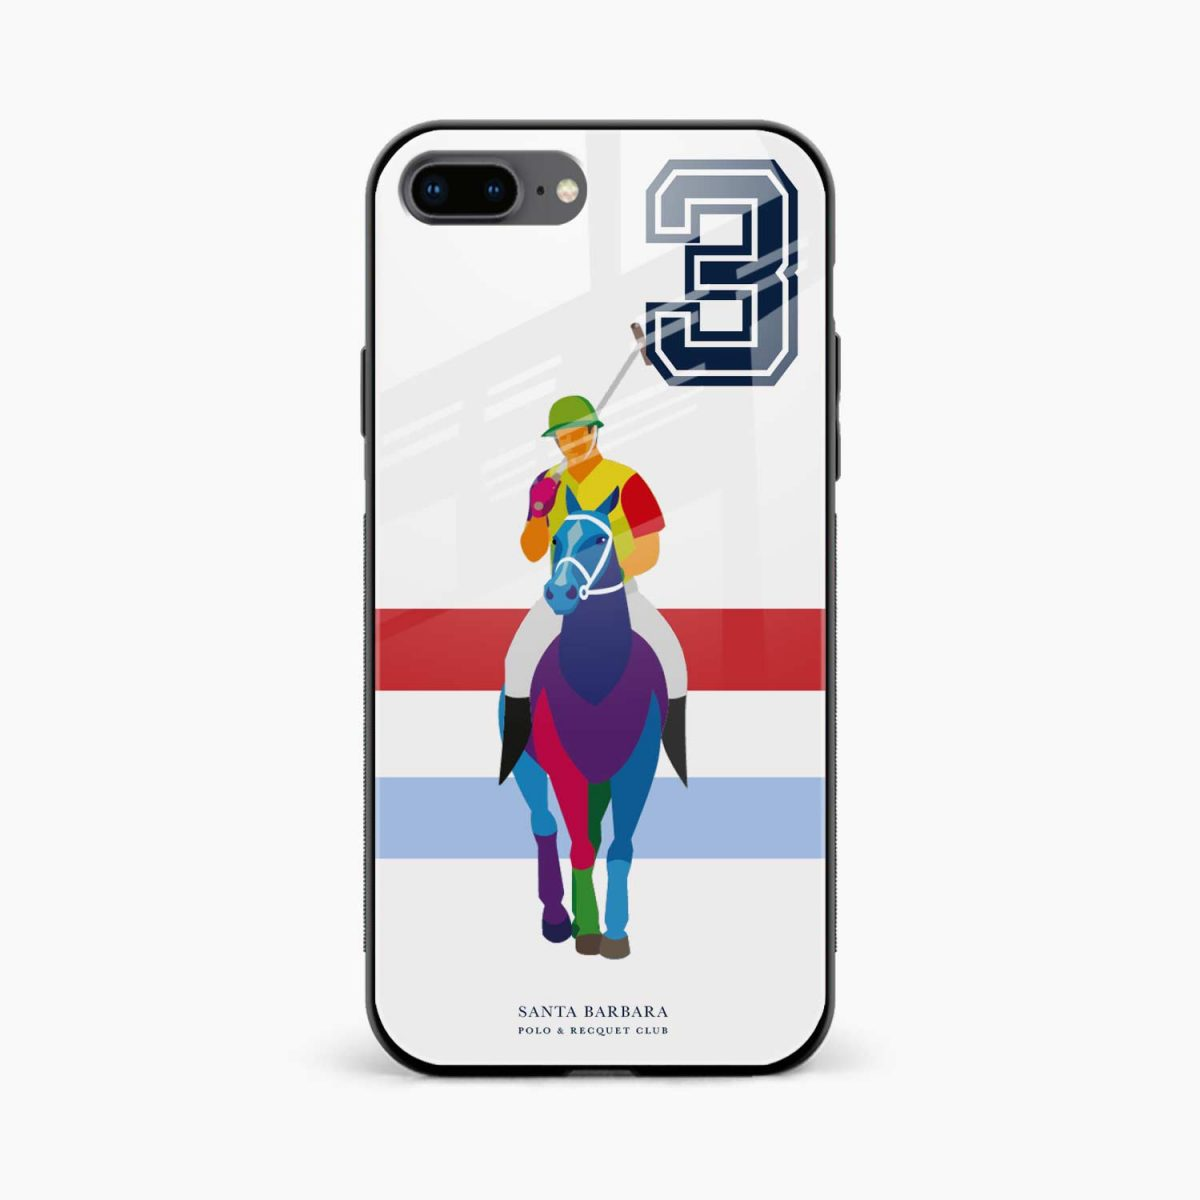 multicolor sant barbara polo front view apple iphone 7 8 plus back cover